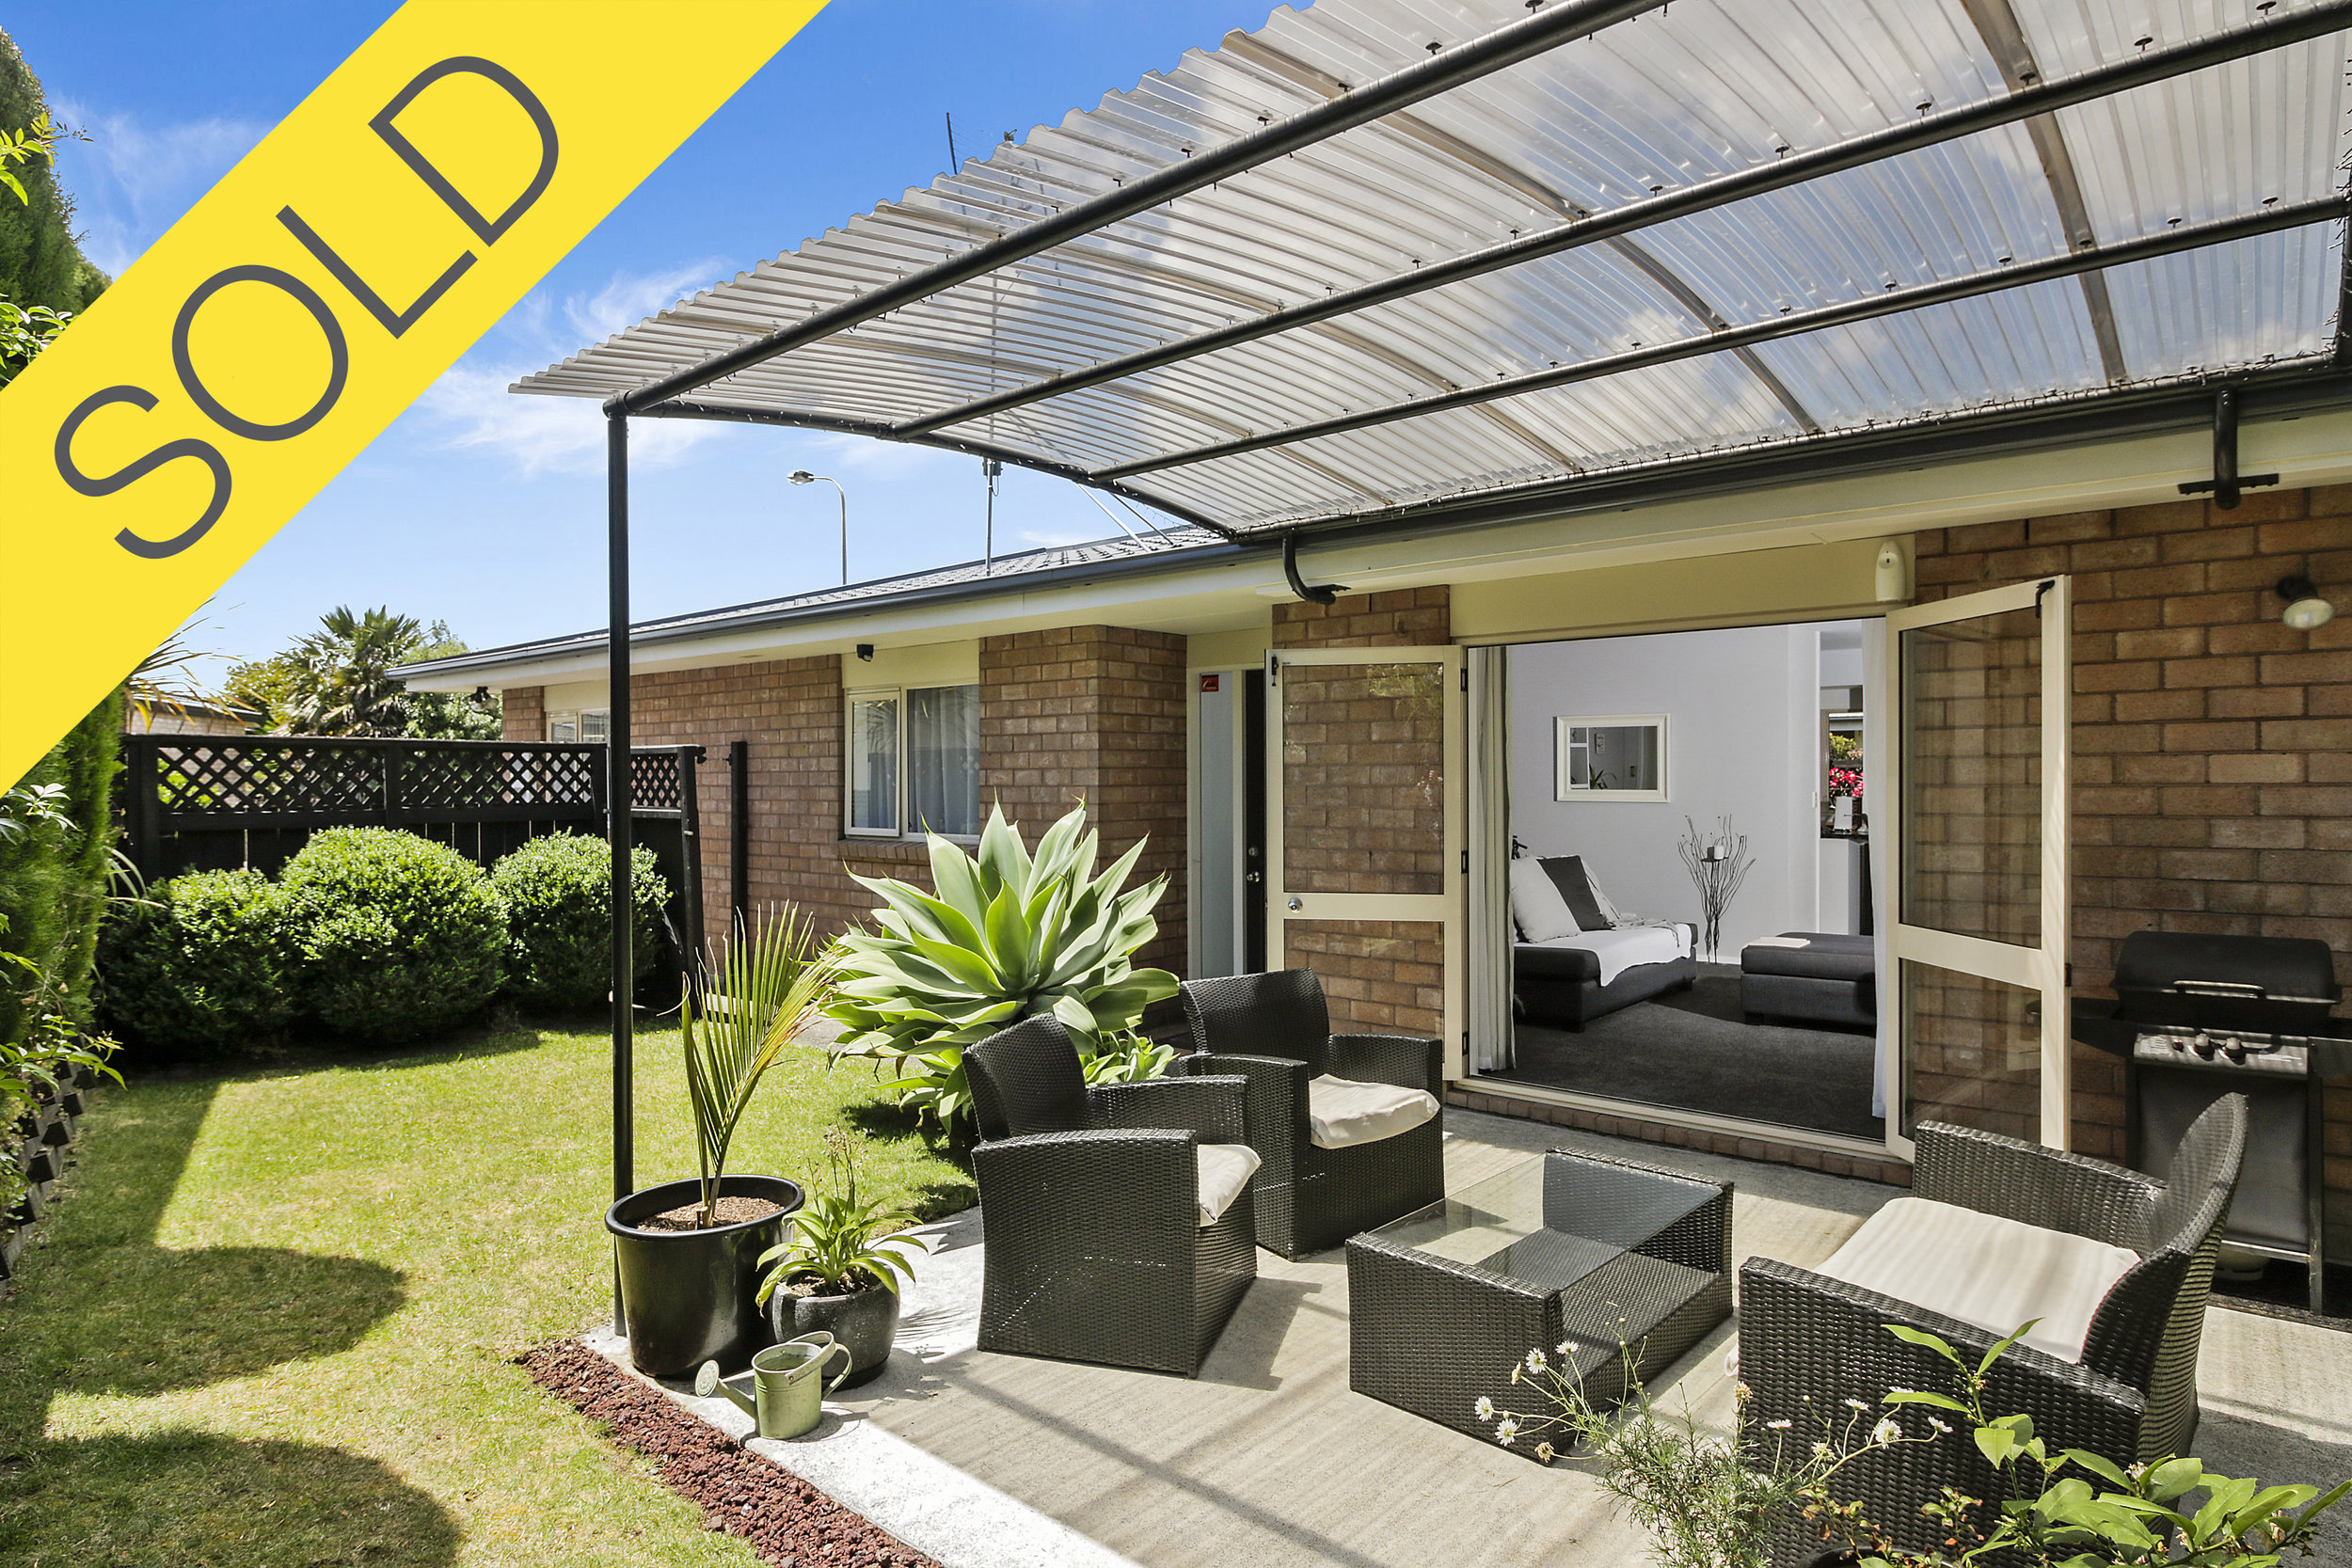 6/53 Mays Road, Onehunga, Auckland - SOLD FEBRUARY 20183 Beds | 2 Baths | 2 Parking